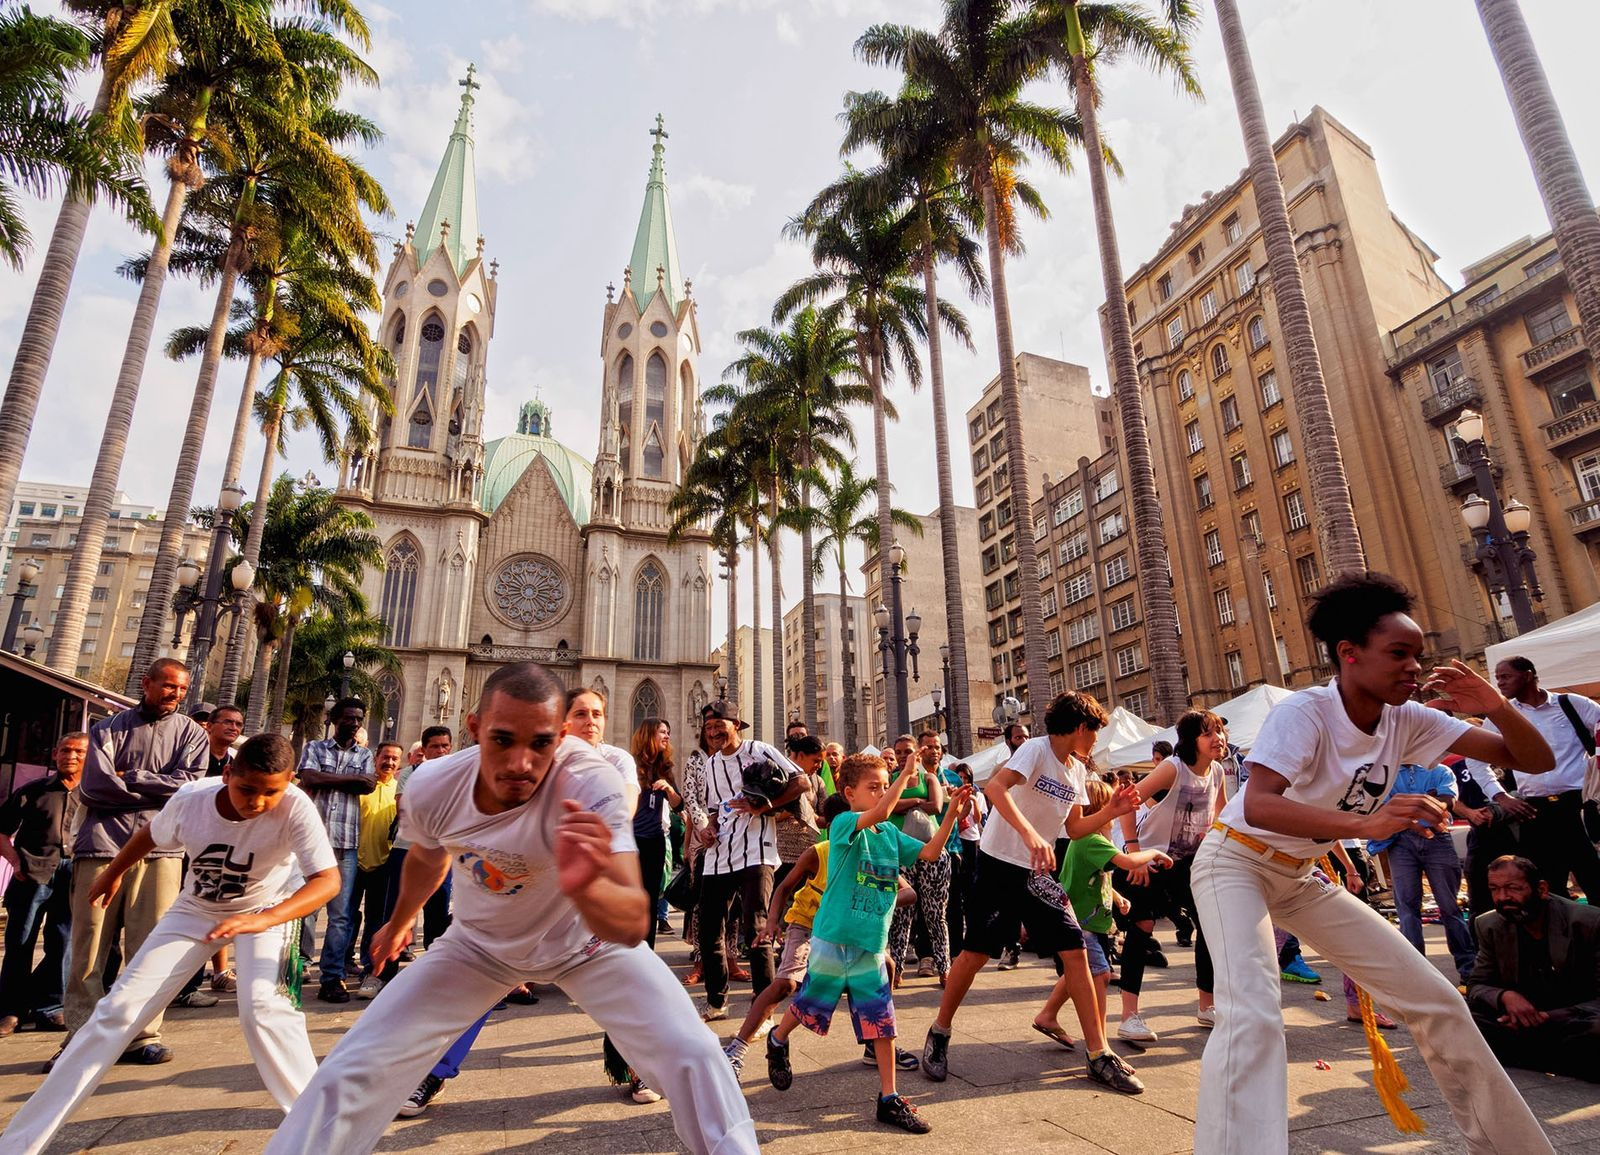 Capoeira performed in front of the Sao Paulo See Metropolitan Cathedral.